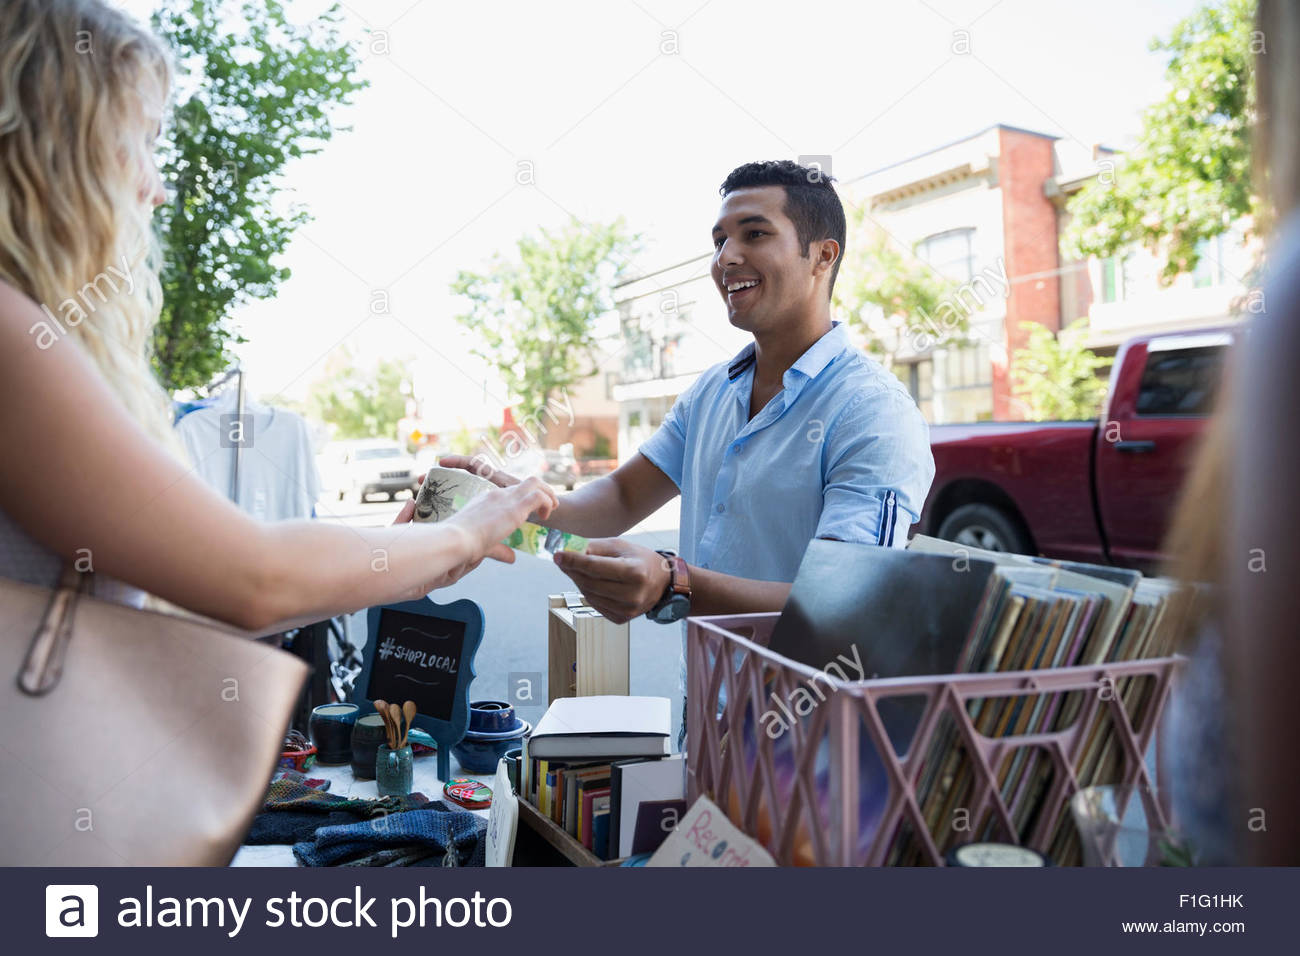 Woman paying for merchandise at sidewalk sale - Stock Image